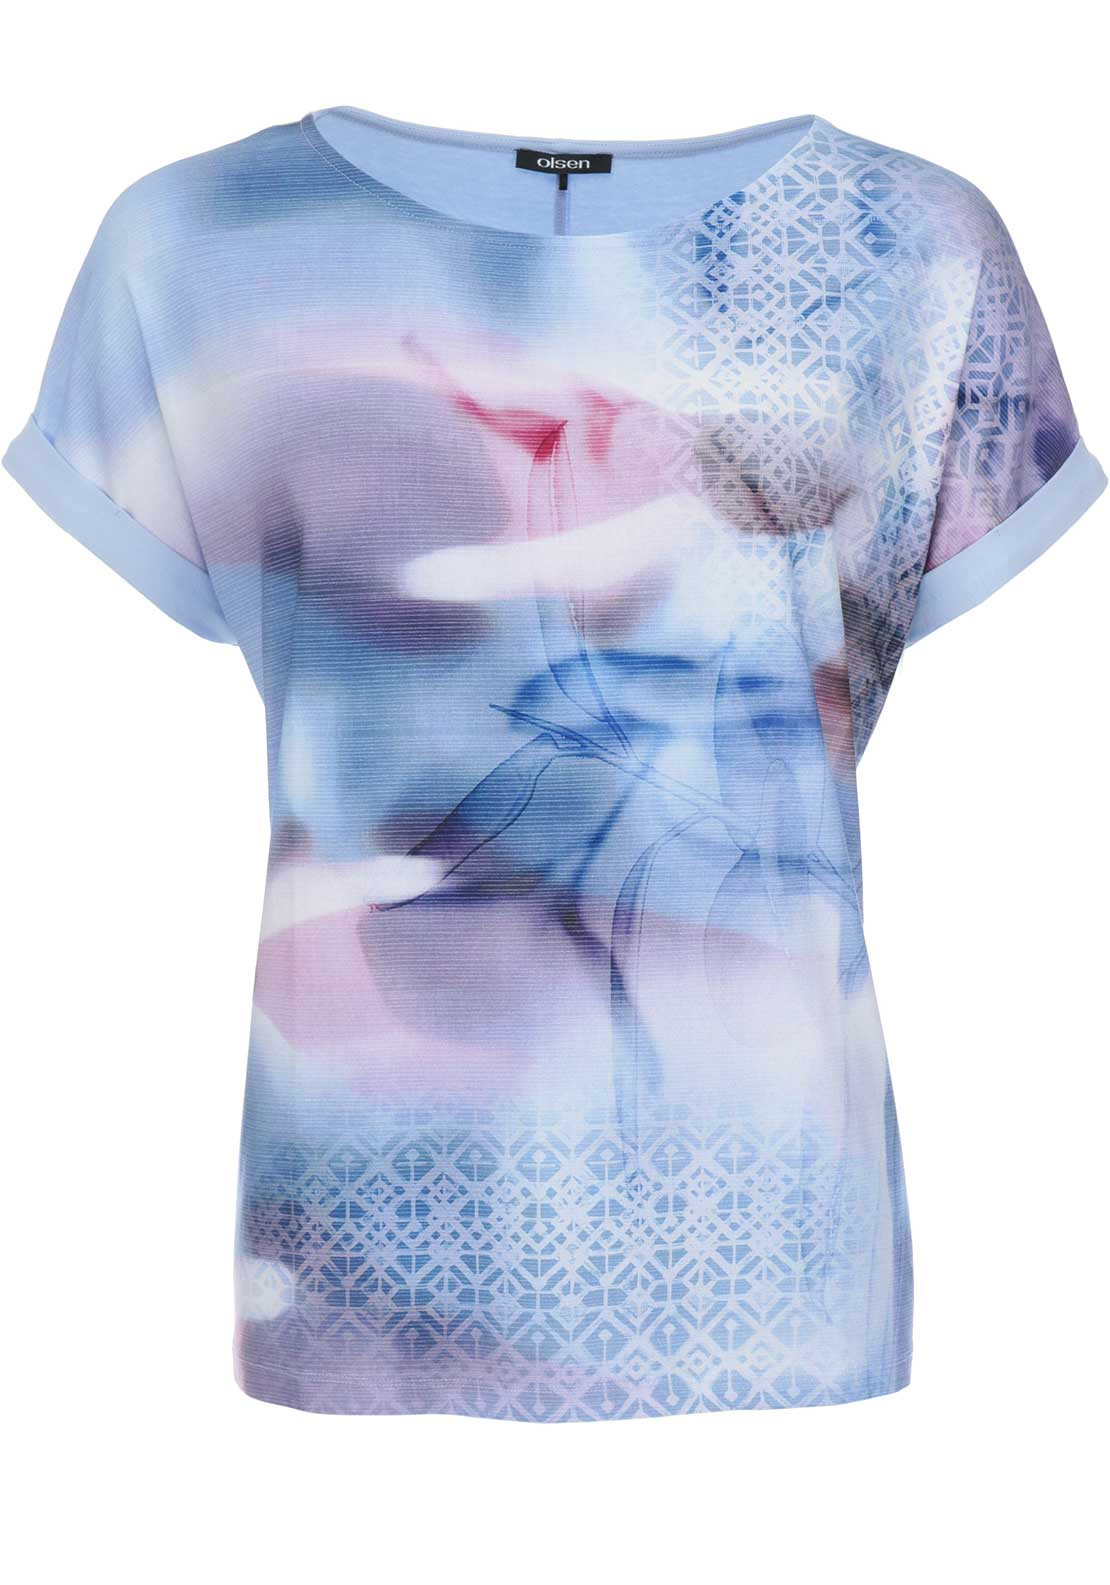 Olsen Abstract Print Jersey Top, Blue